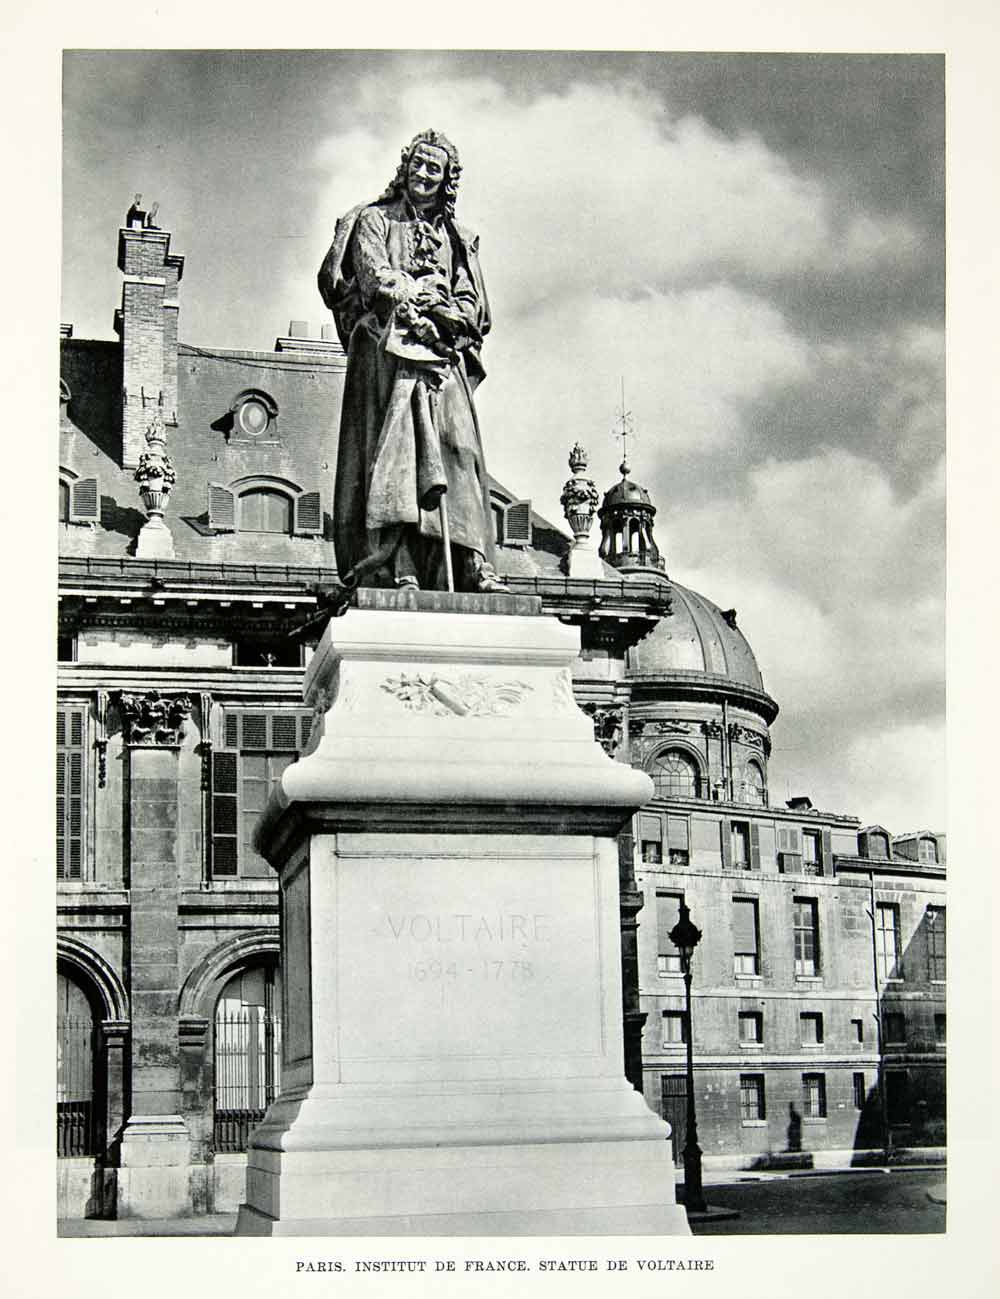 1952 Rotogravure Statue Voltaire Paris France Institute Urban Architecture XGIC3